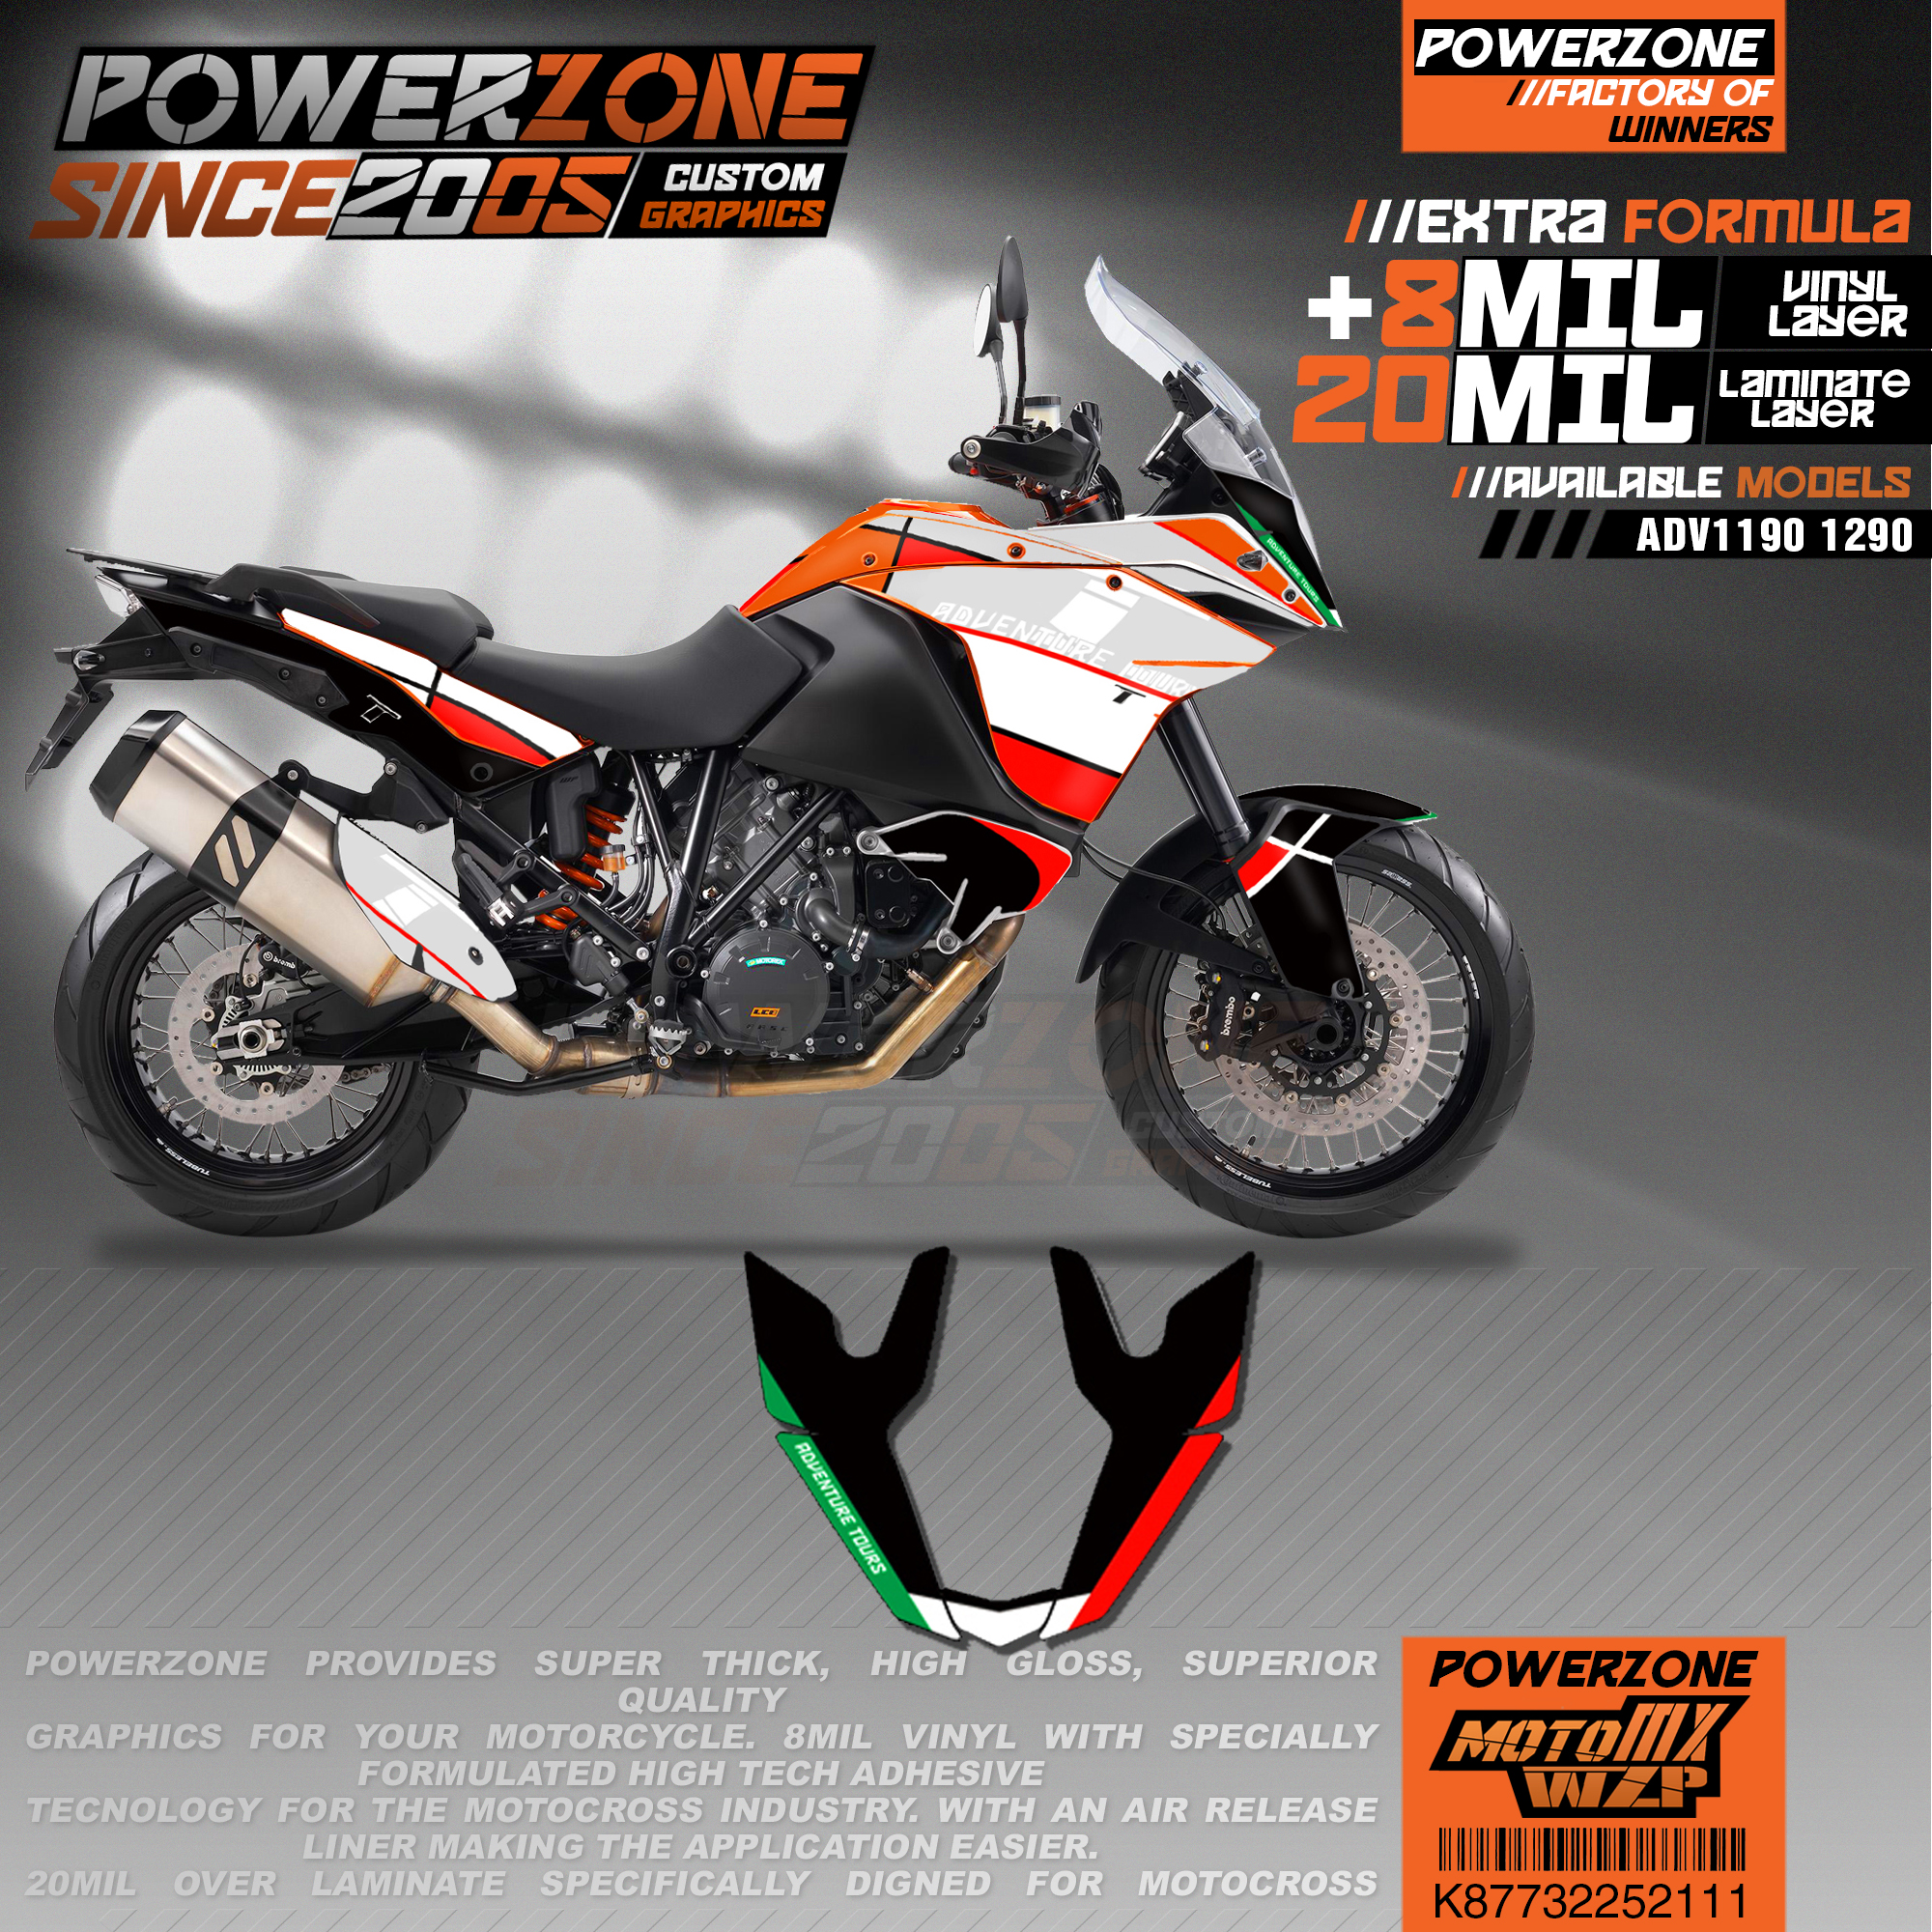 PowerZone Custom Team Graphics Backgrounds Decals 3M Stickers Kit For KTM ADV 1050 1090 1190 1290 111